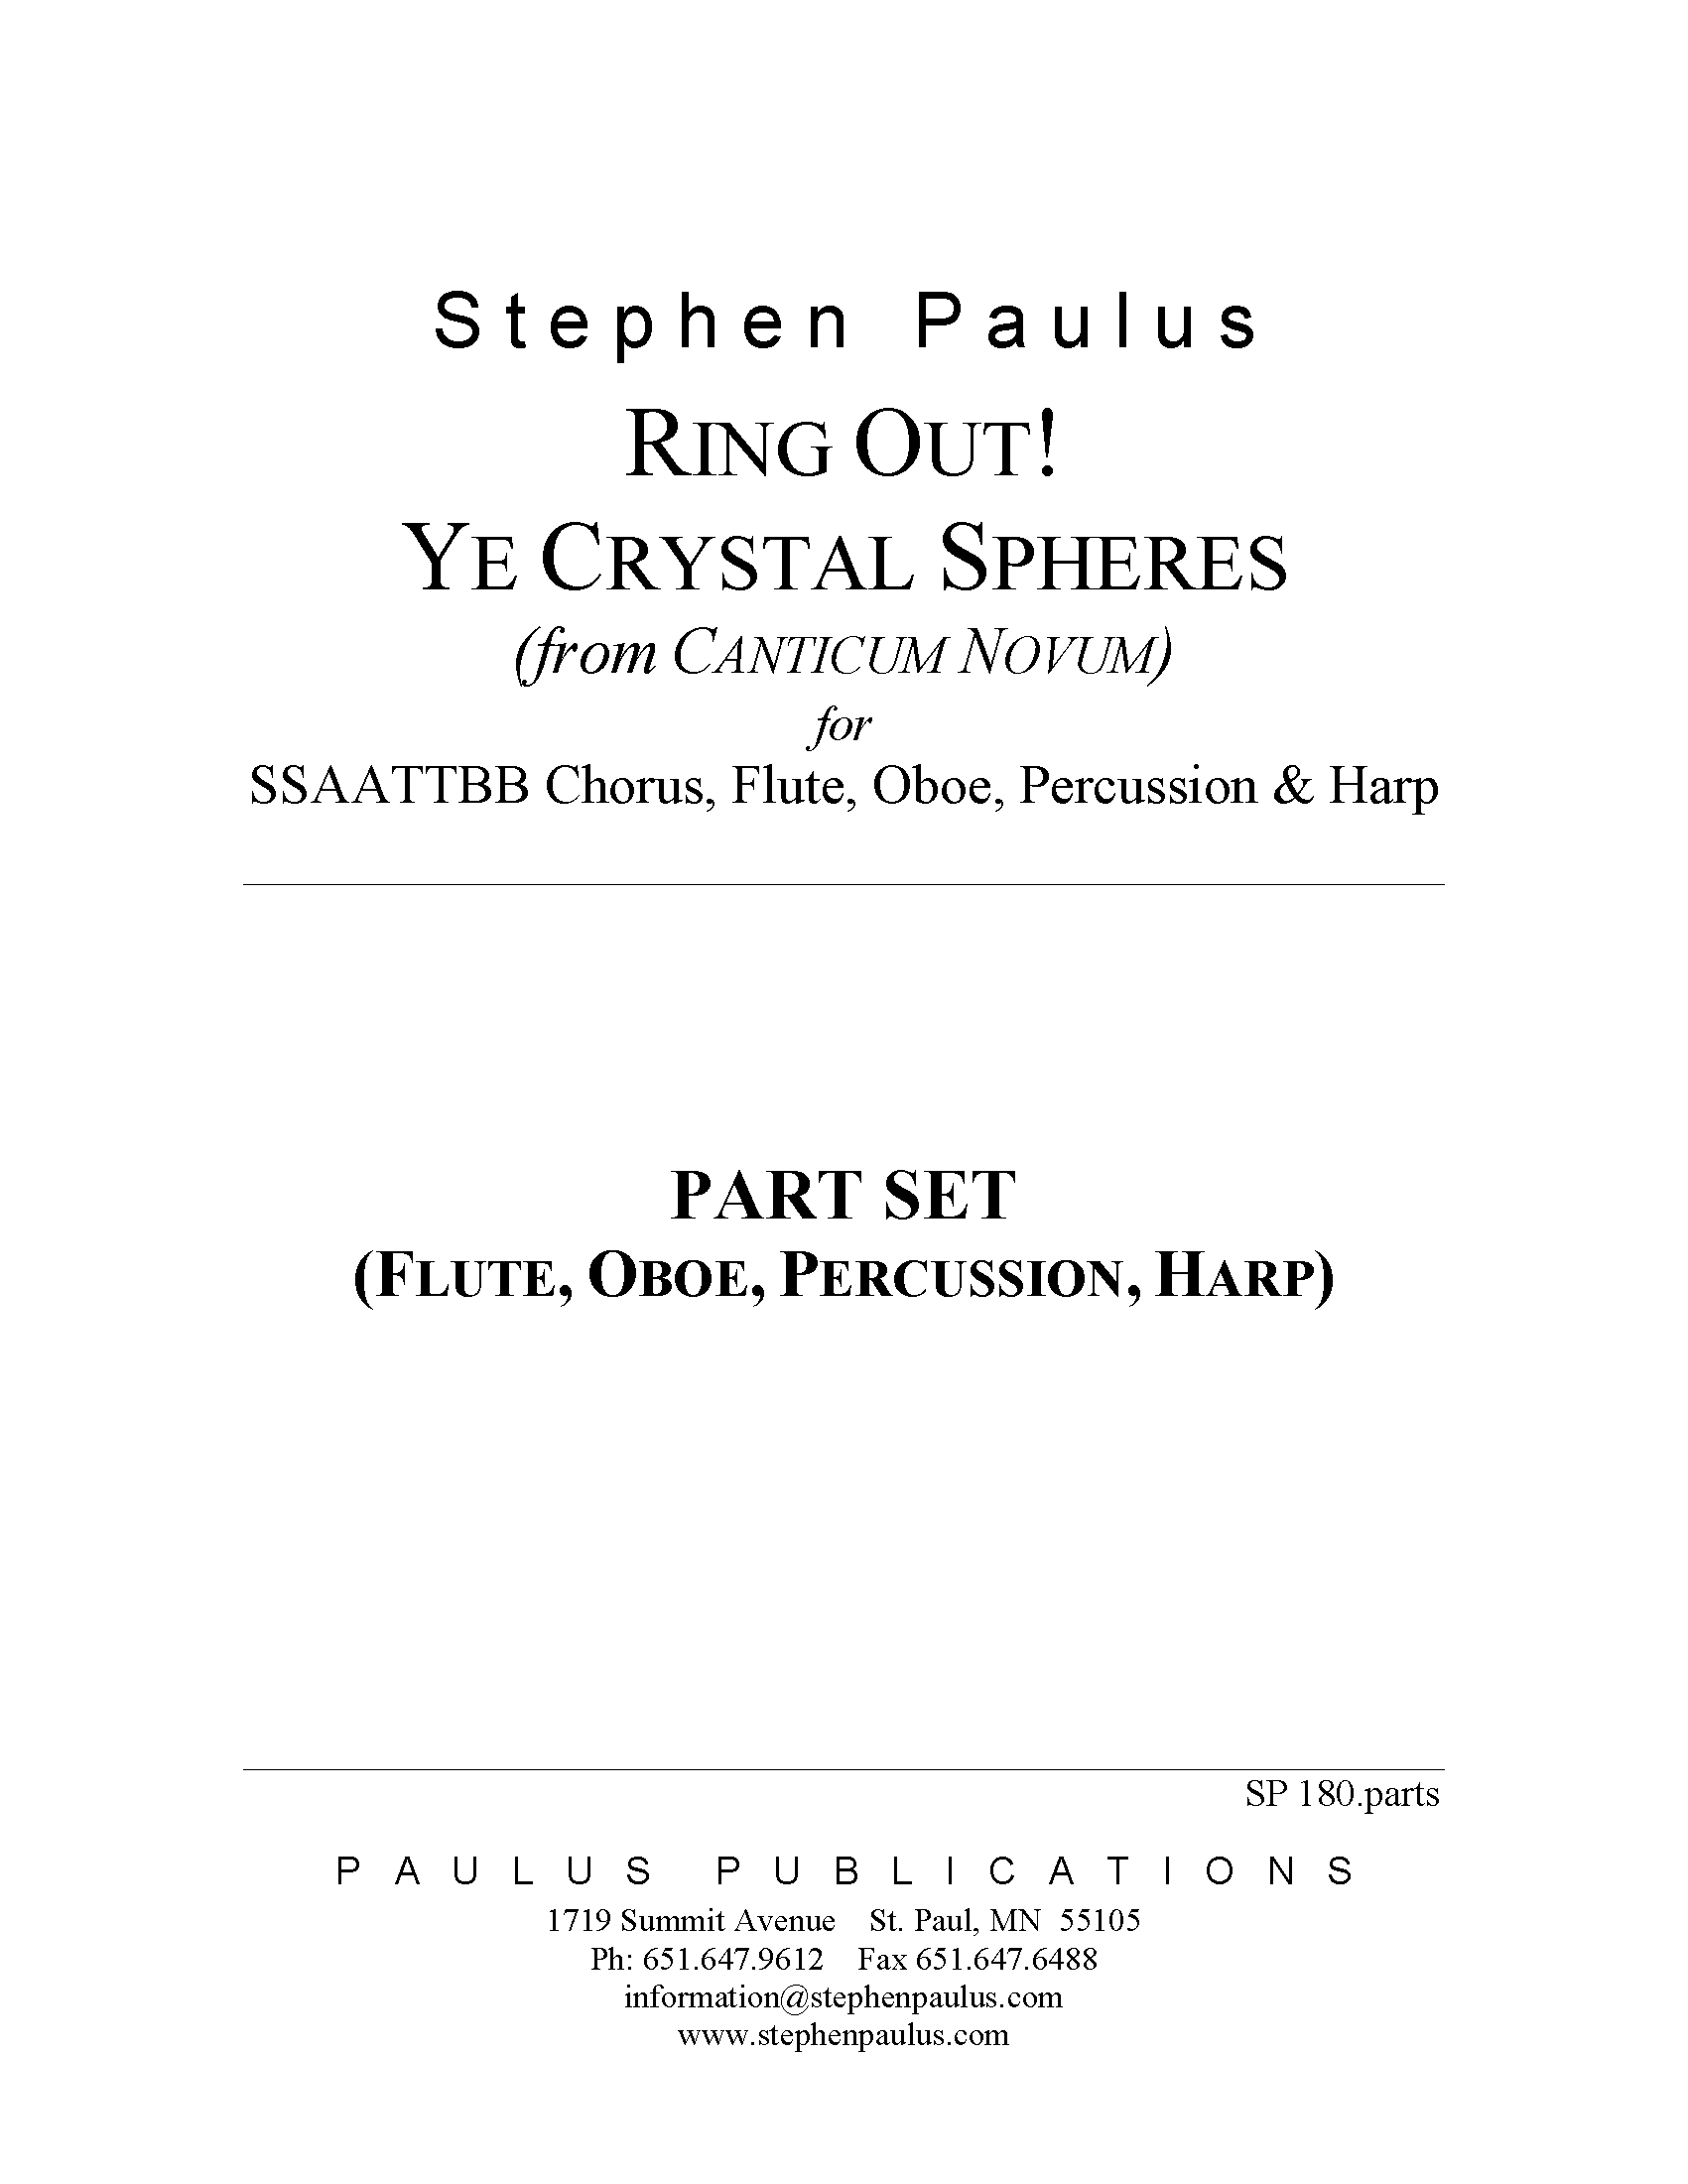 Ring Out! Ye Crystal Spheres - PARTS